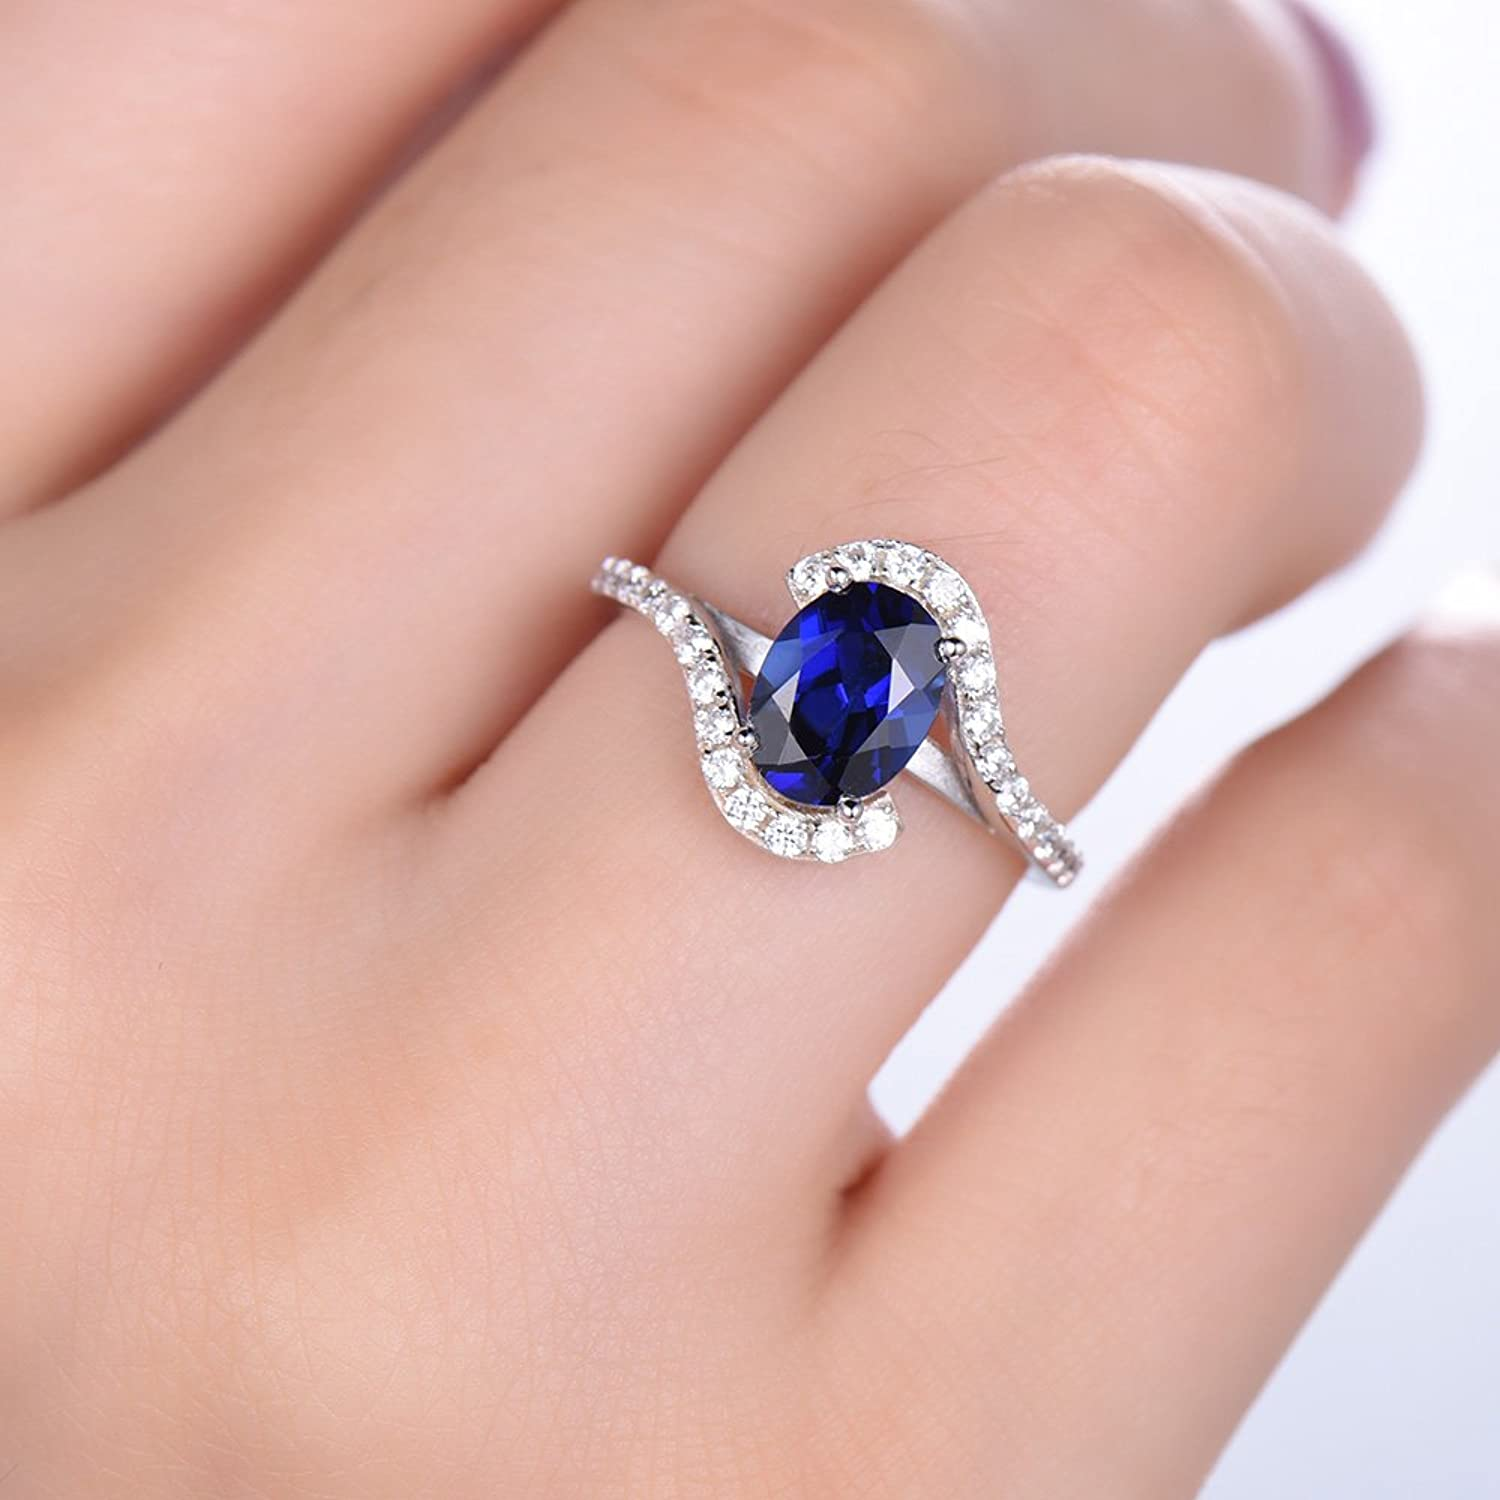 Amazon.com: Lab Blue Sapphire Engagement Ring 925 Sterling Silver ...